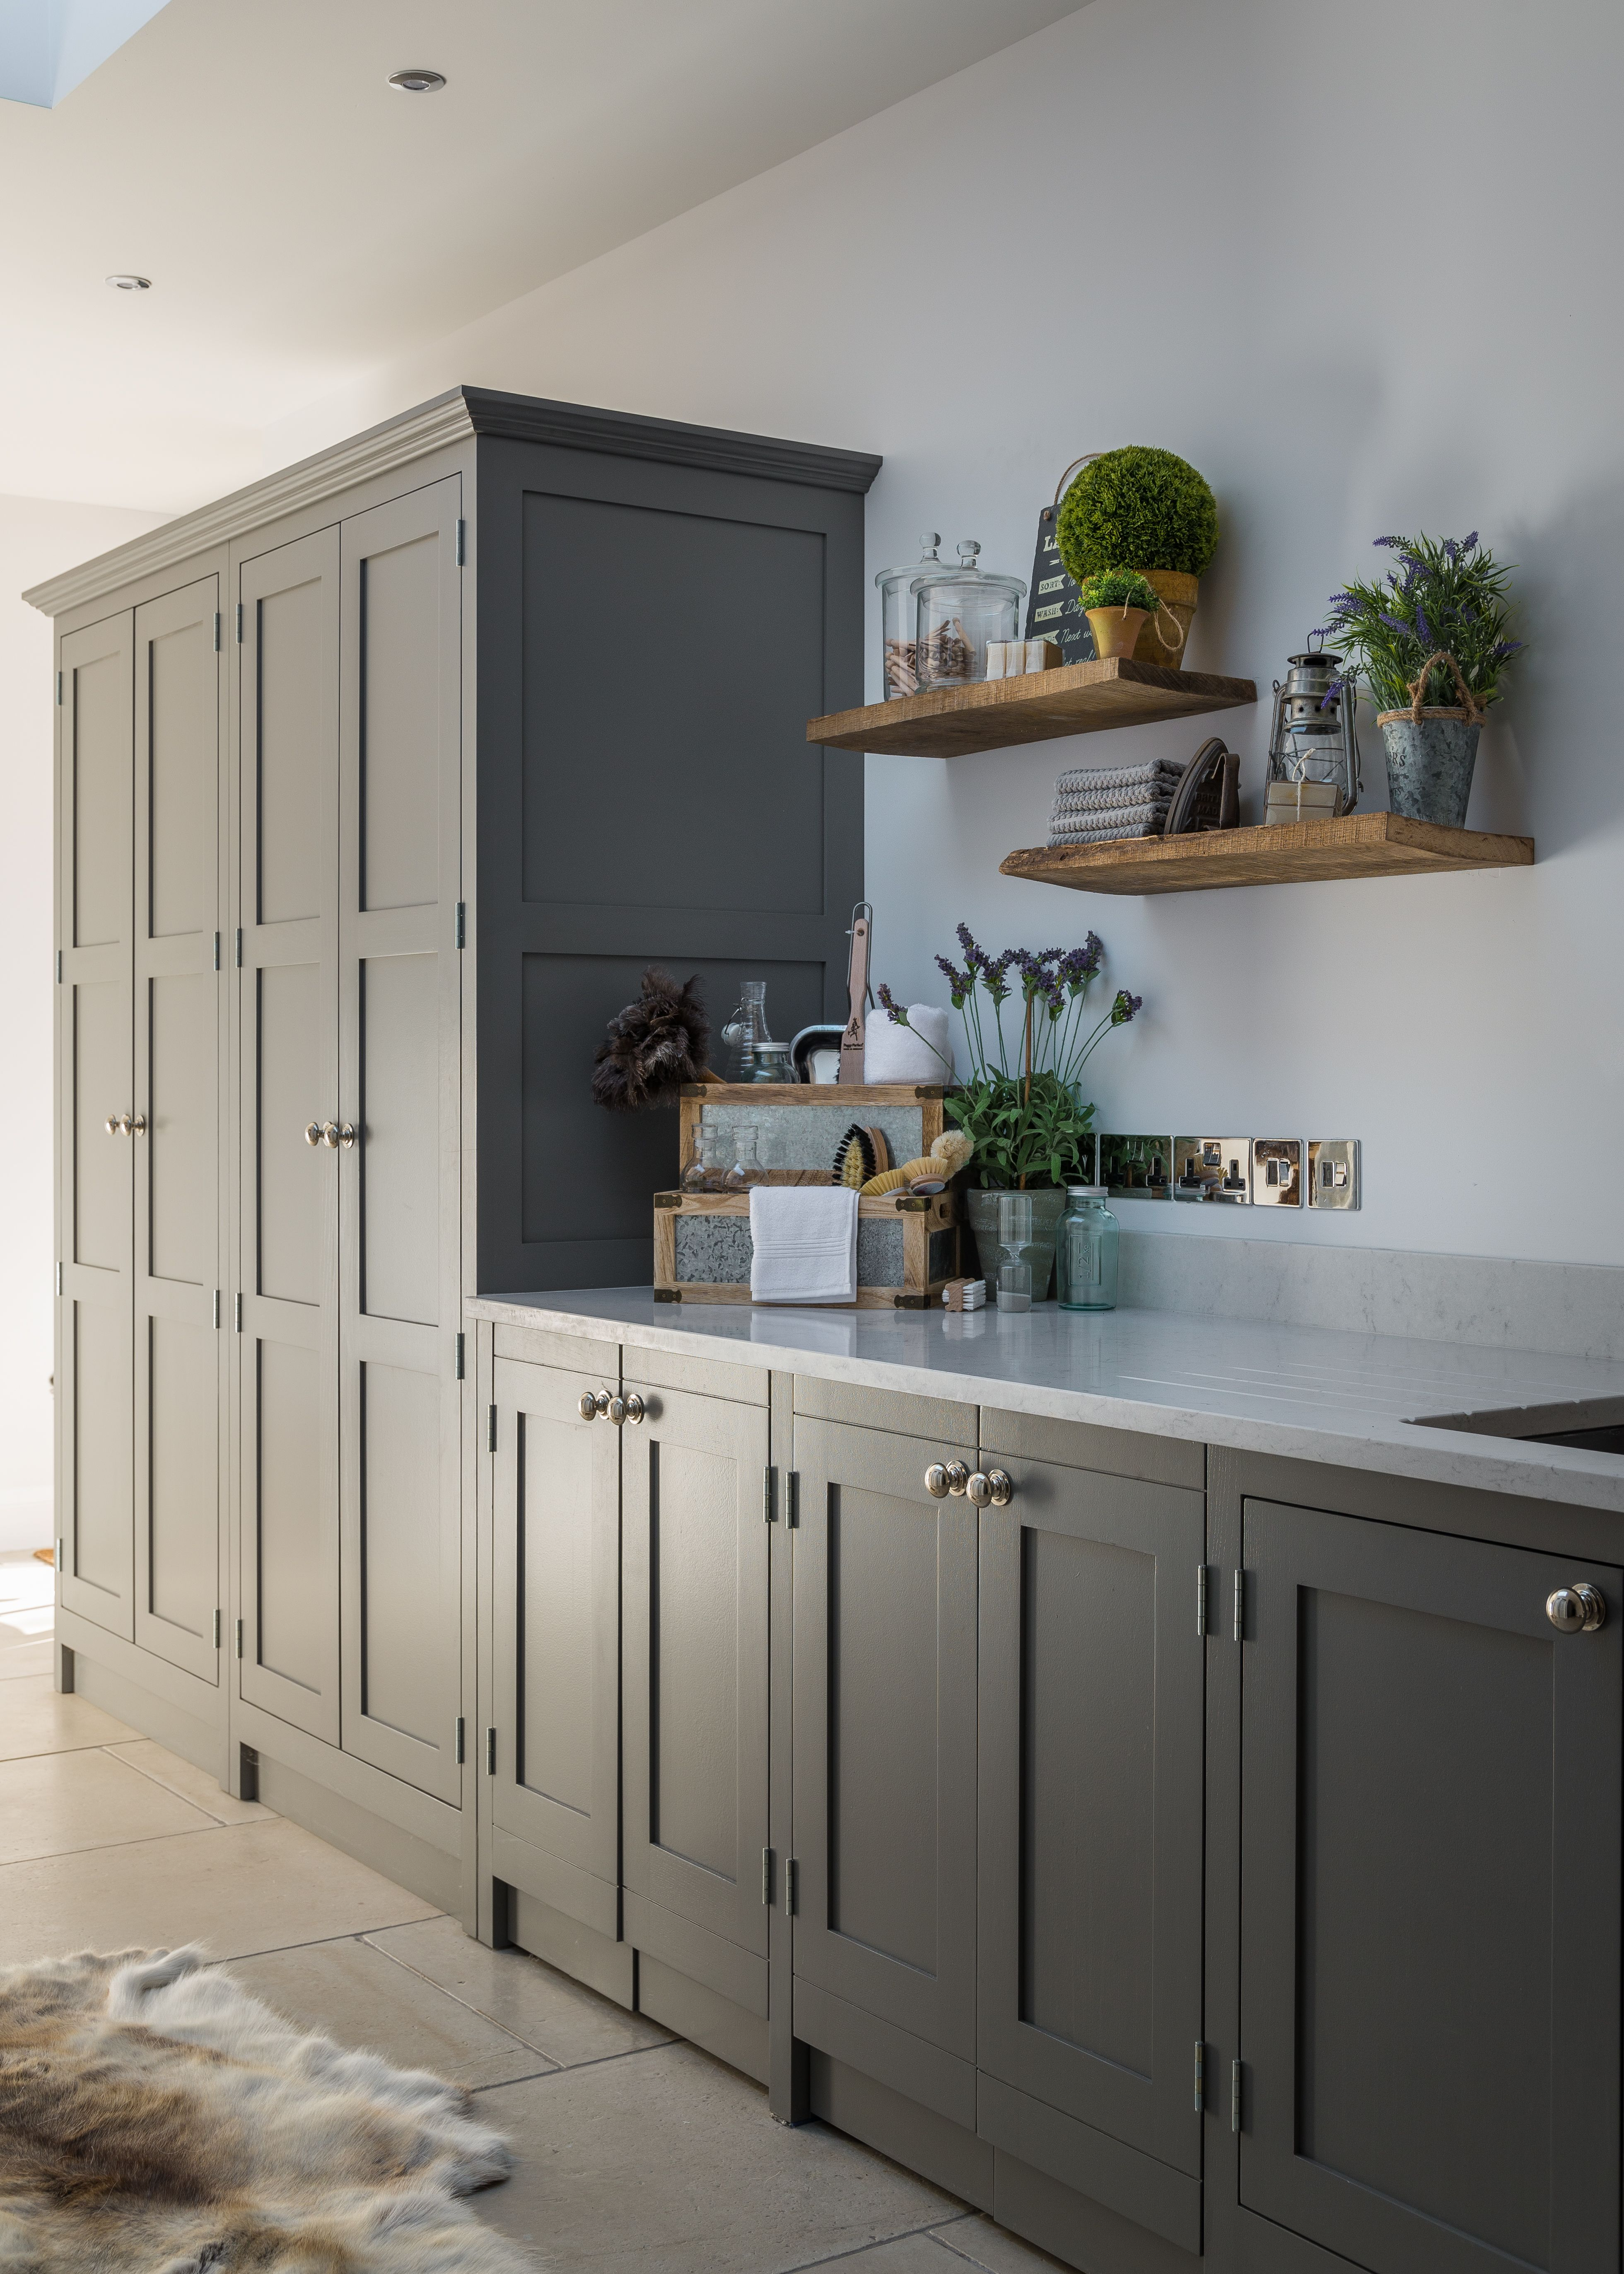 Pin by on Building a house Shaker style